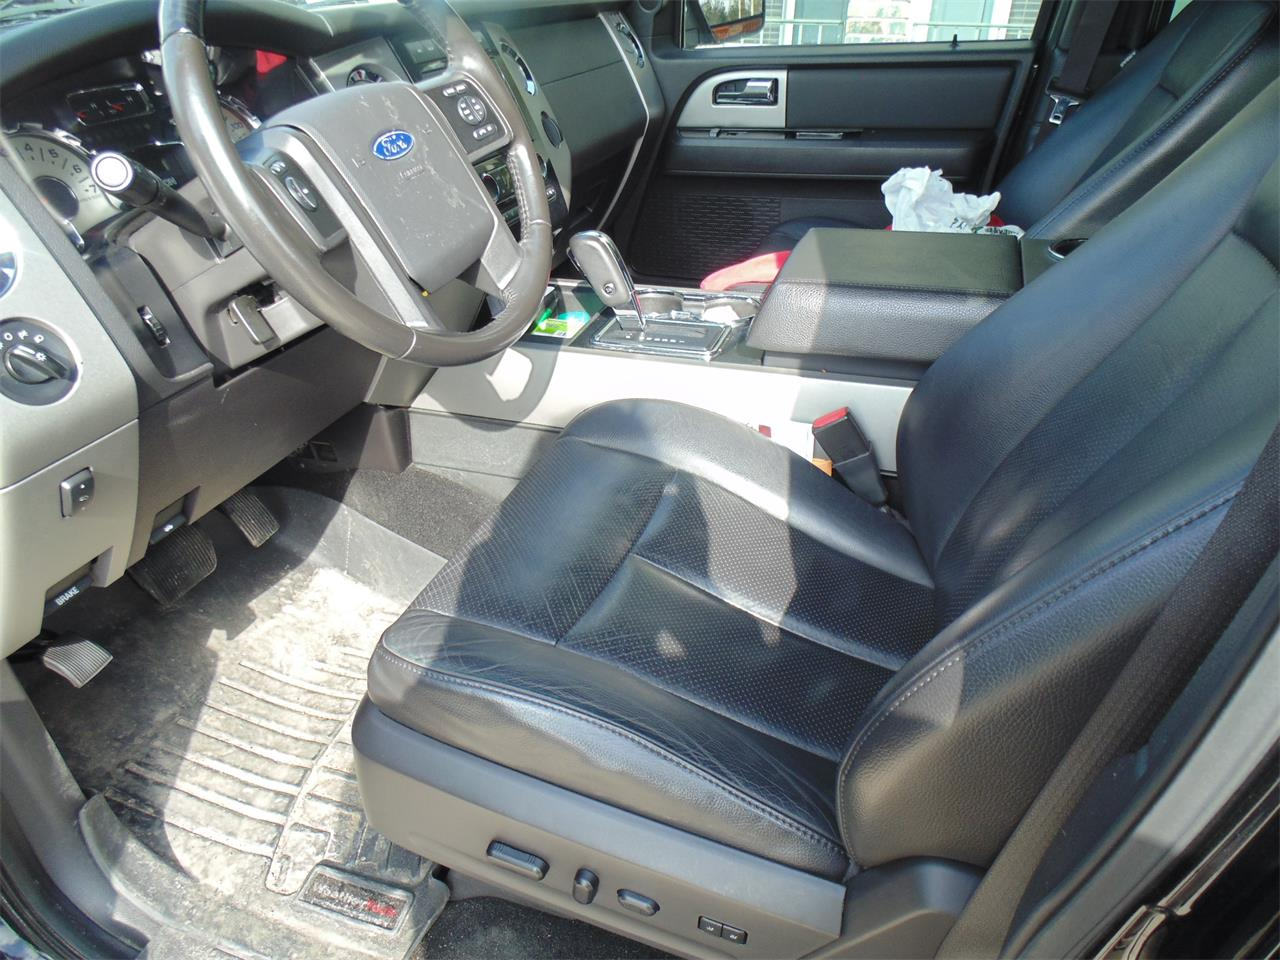 2011 Ford Expedition (CC-1022889) for sale in Rochester,Mn, Minnesota